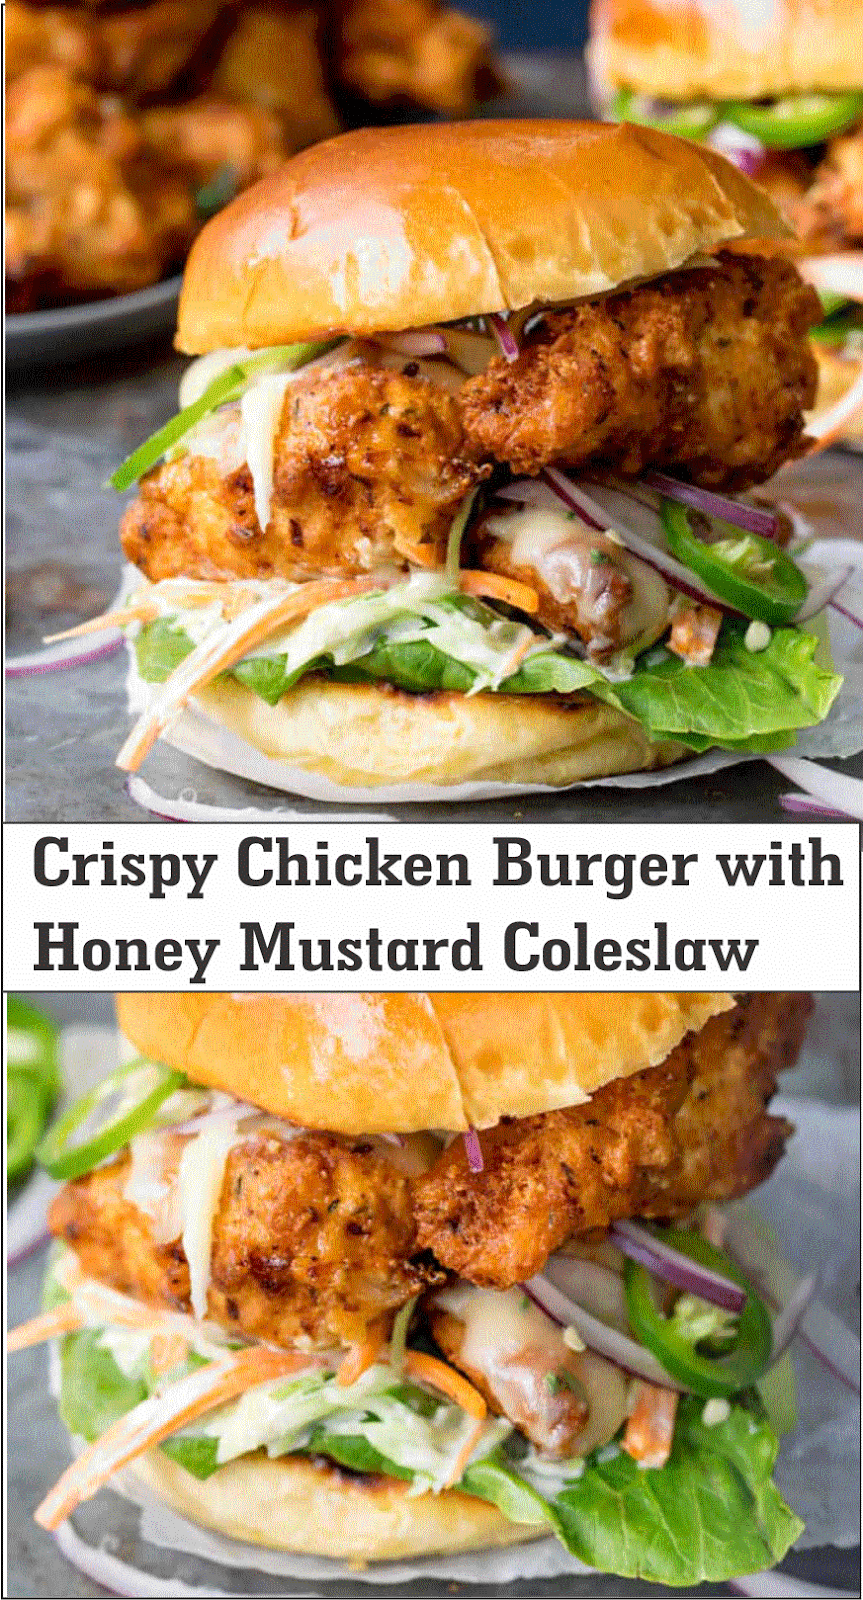 Photo of Crispy Chicken Burger with Honey Mustard Coleslaw  #sandwichrecipes #honeymustar…